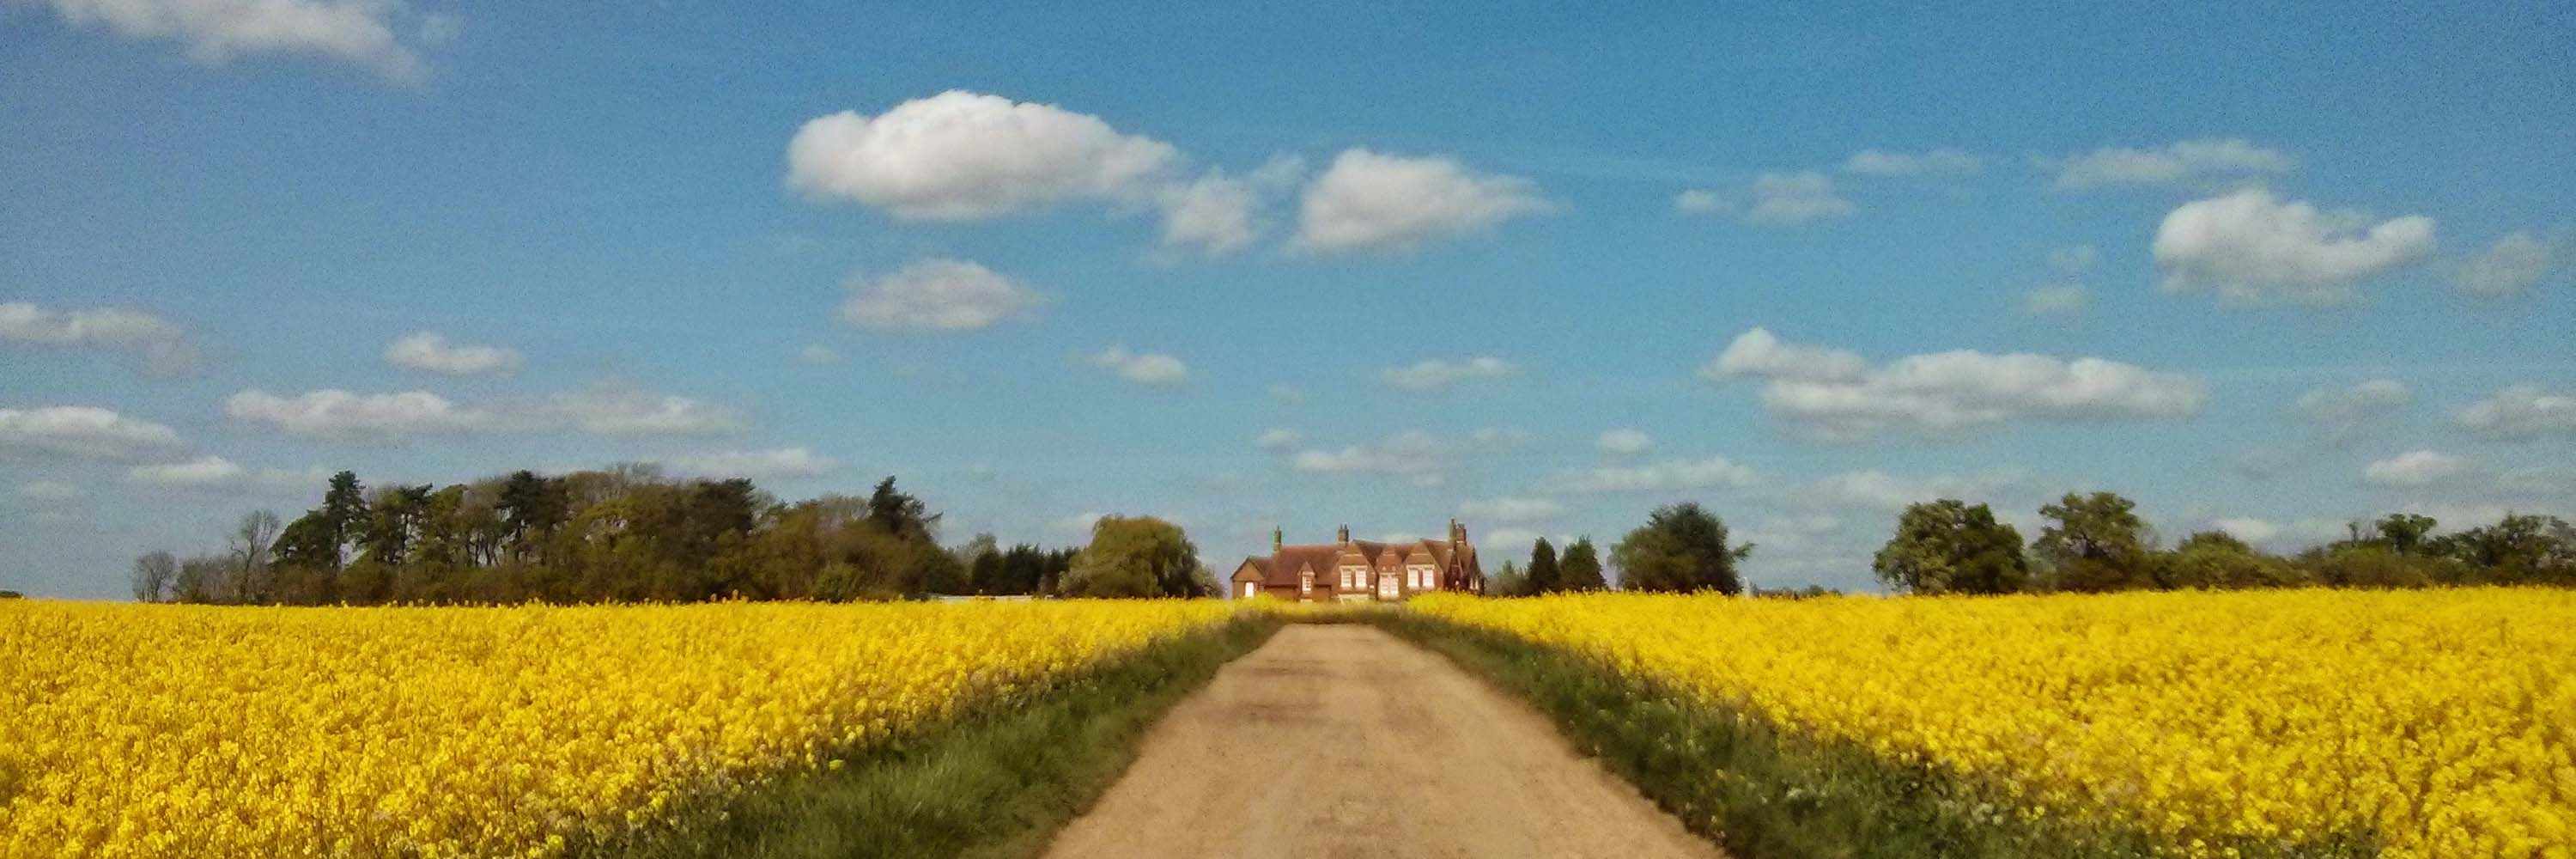 The Drayton Estate, Northamptonshire, Rapeseed Field